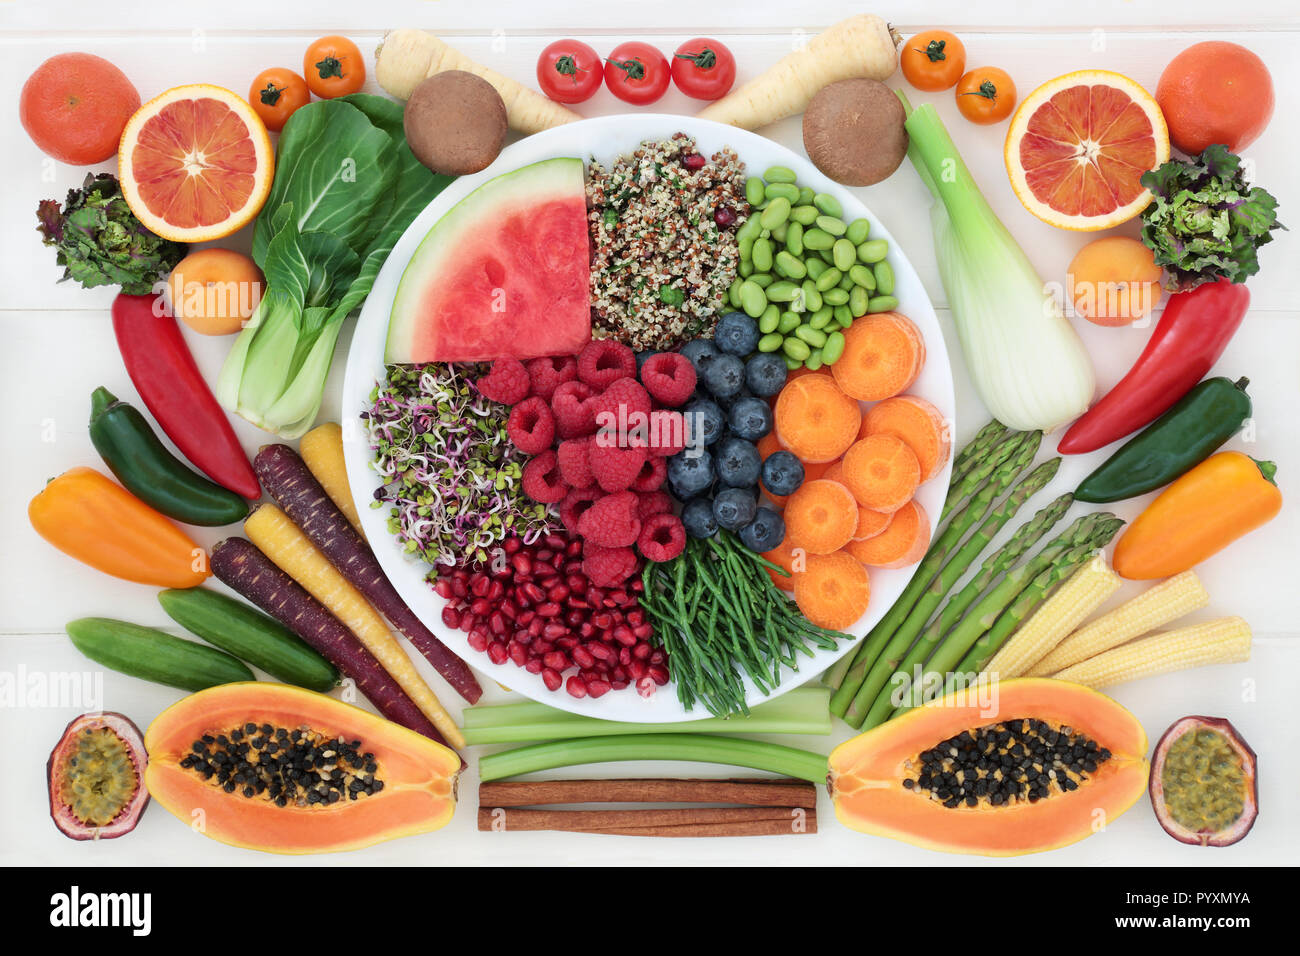 Healthy Food Choice With Superfood Of Fresh Fruit Vegetables Mixed Salad Grains And Spice Very High In Protein Antioxidants Vitamins Stock Photo Alamy